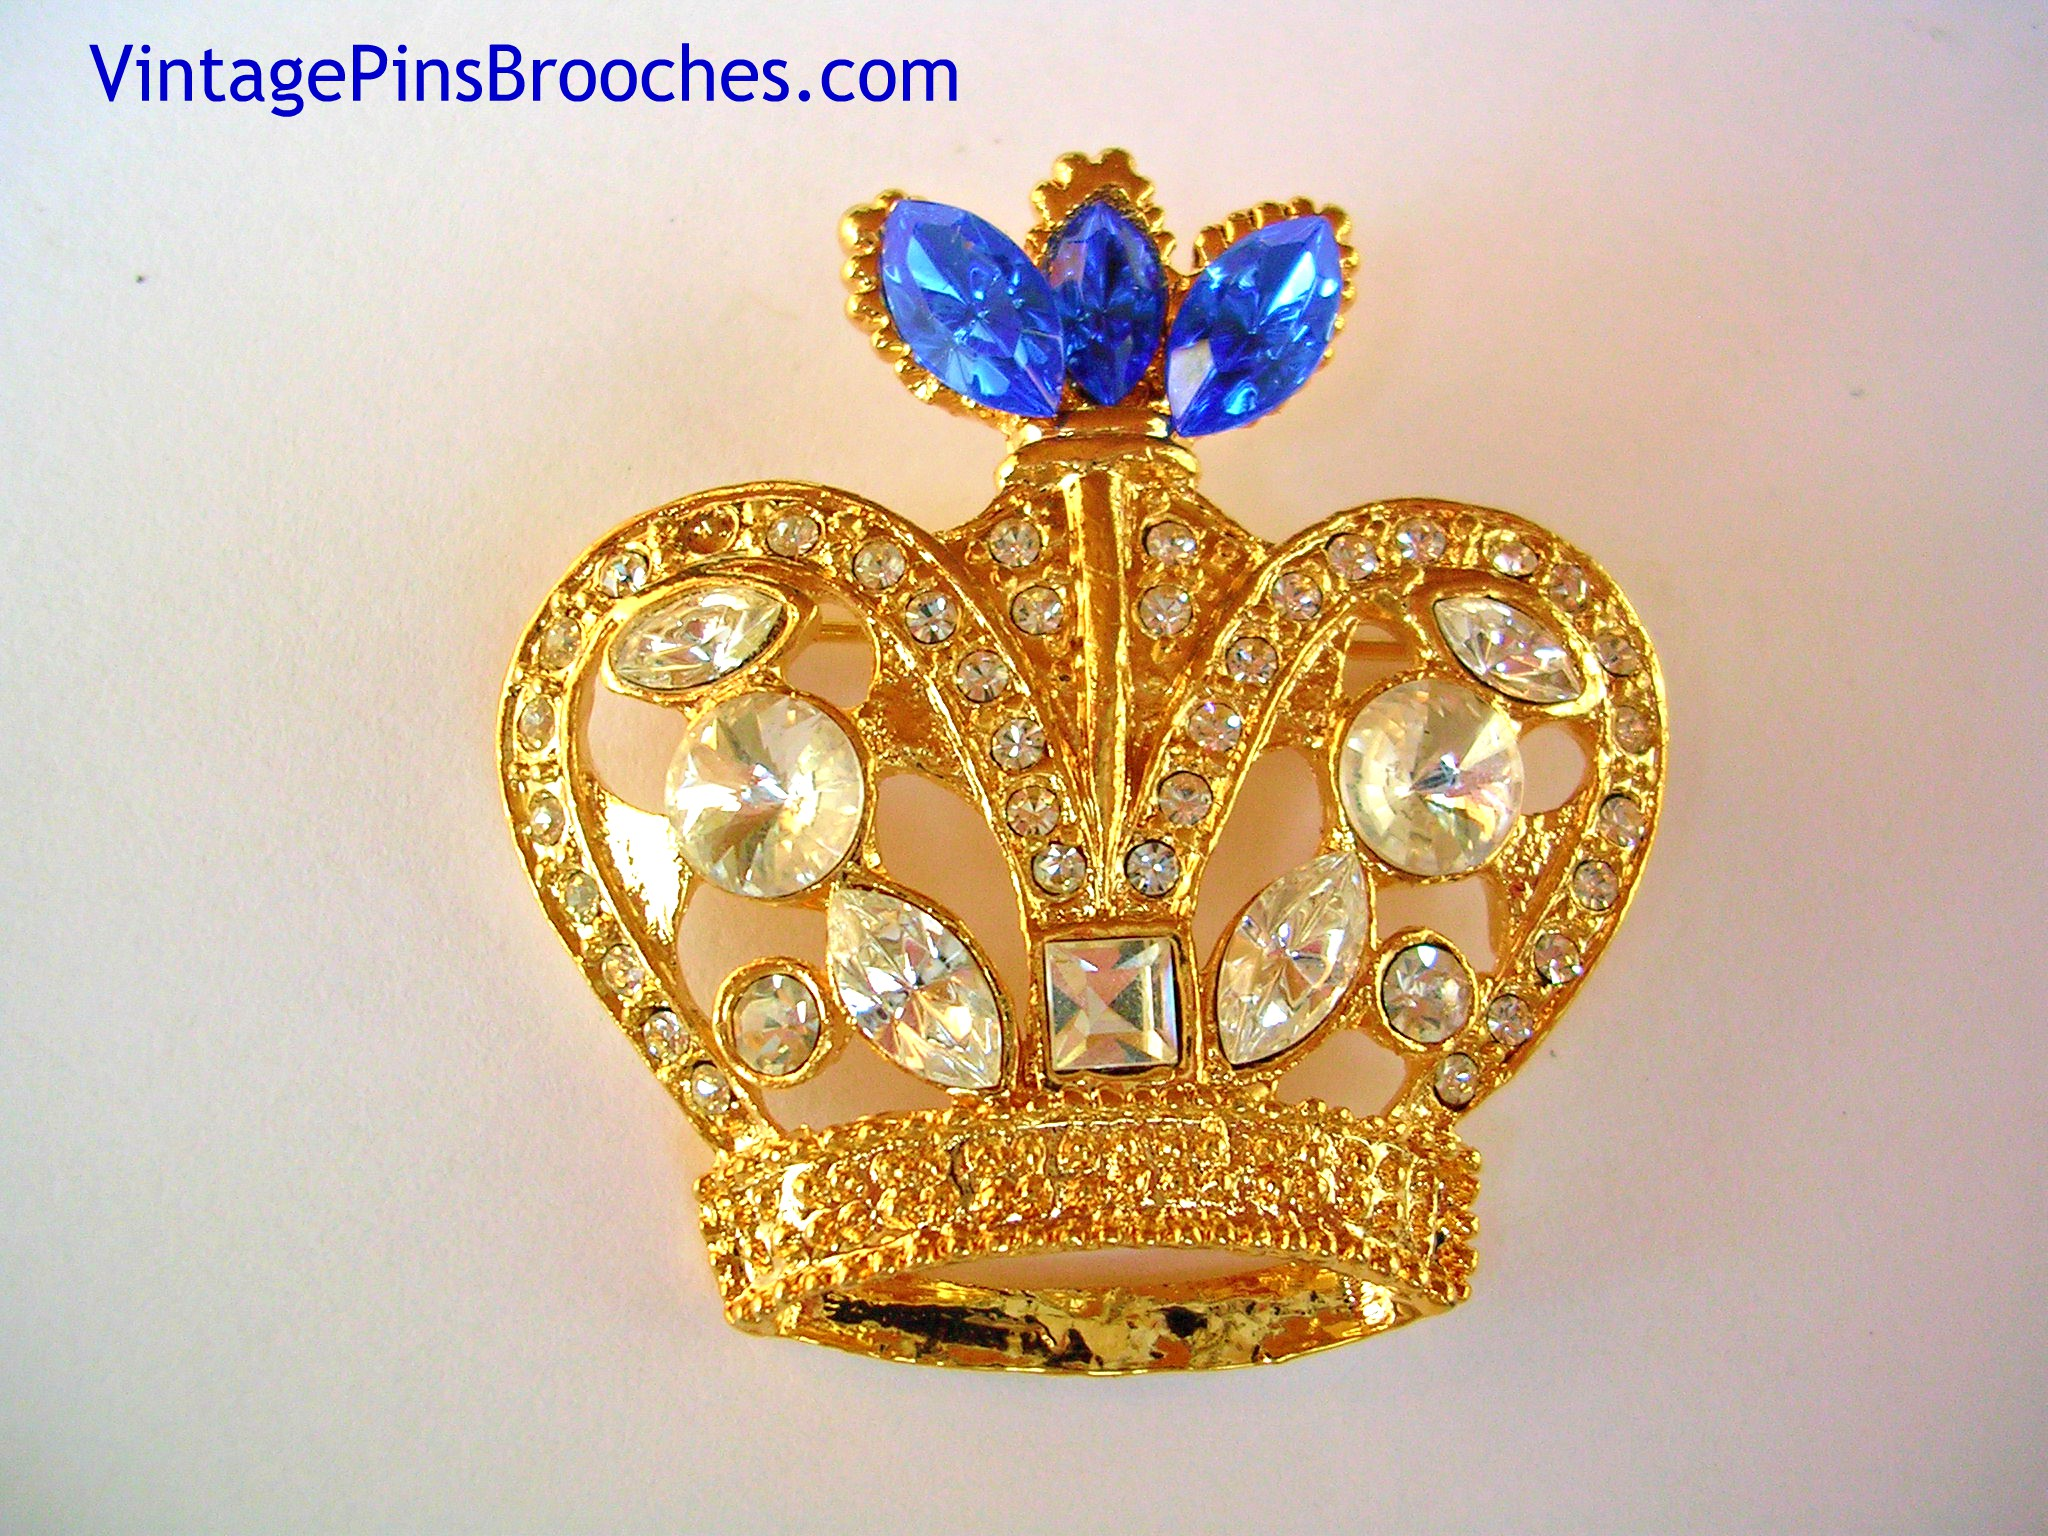 e6dcbf20e6980 Vintage Blue Sapphire Diamond Rhinestone Royal Crown Brooch Pin Jewelry,  Prom Pageant Religion Brooches Pins Crowns